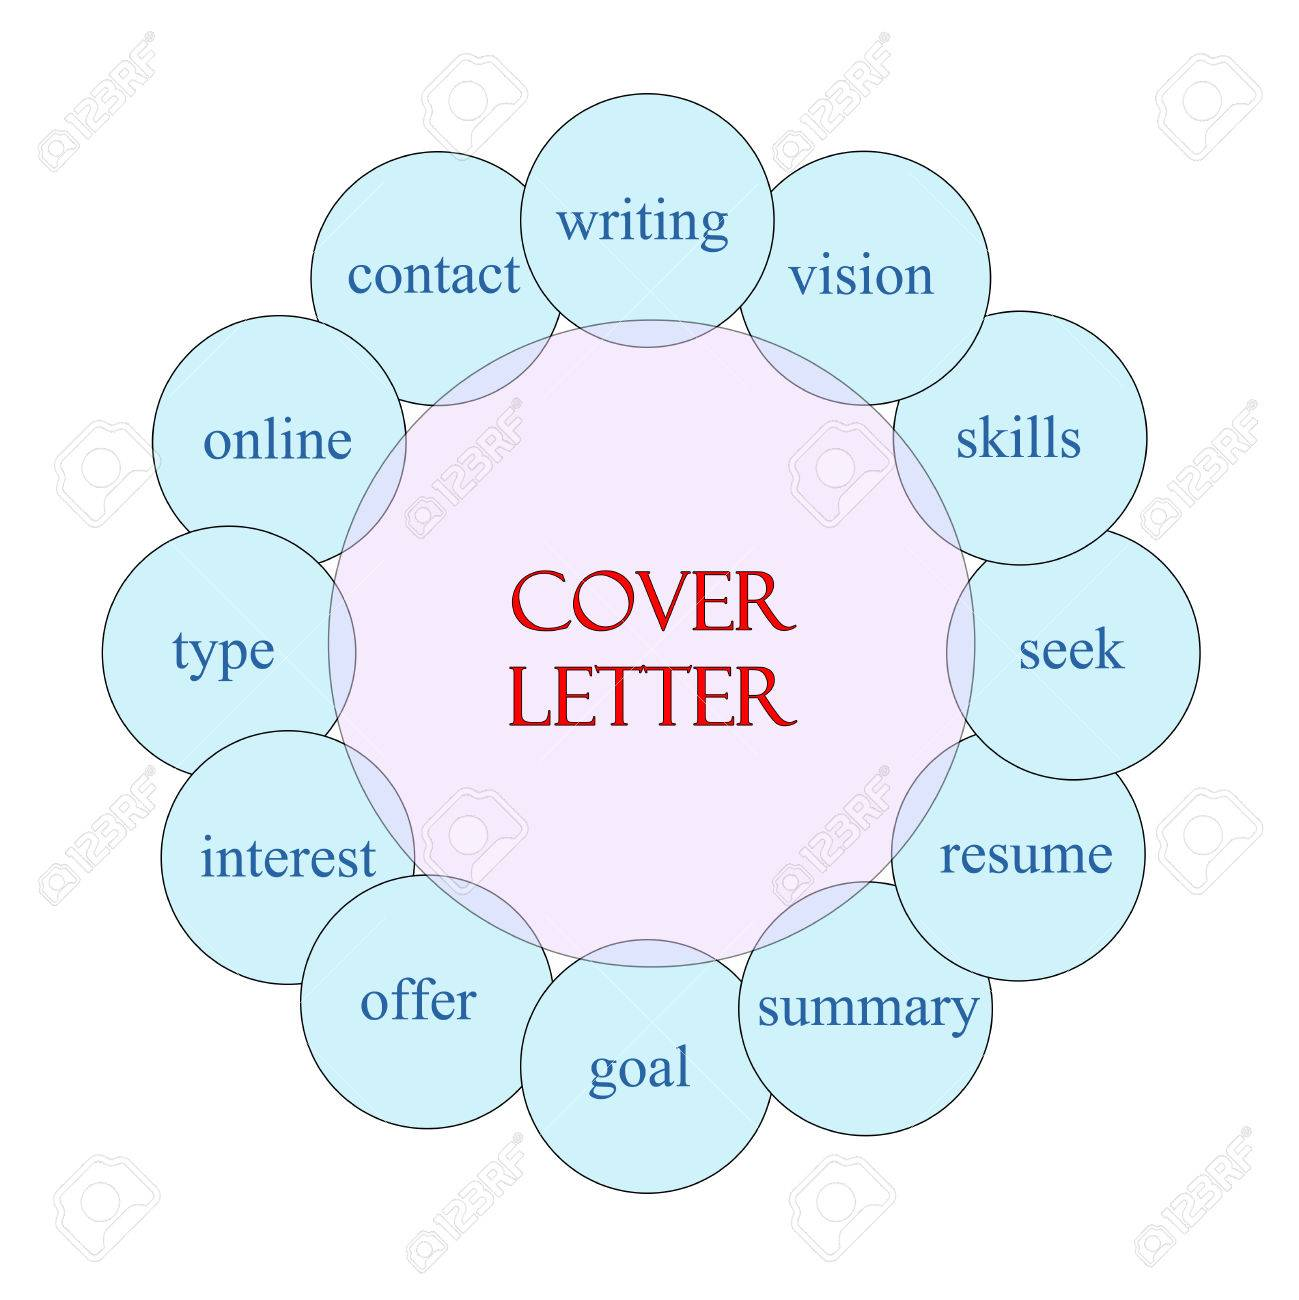 Cover letter concept circular diagram in pink and blue with great cover letter concept circular diagram in pink and blue with great terms such as and writing ccuart Images